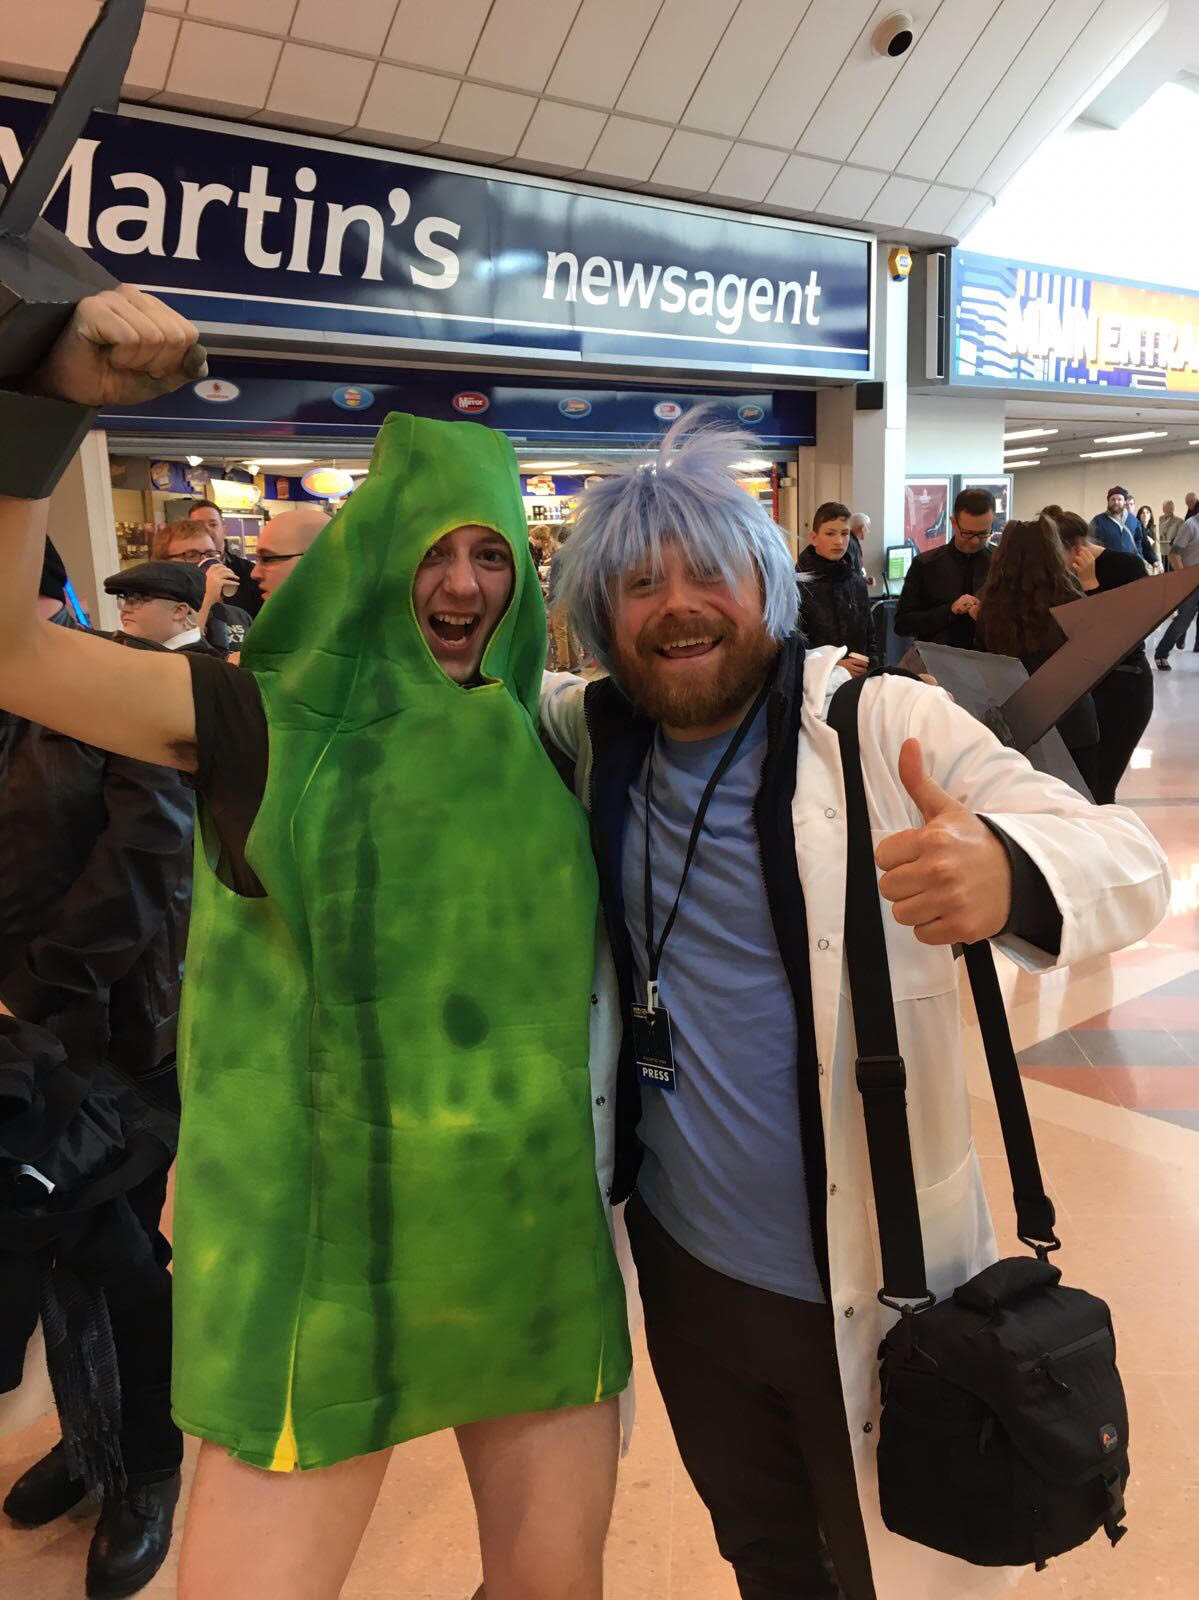 Ollie Peart as Rick. With a Pickle Rick.